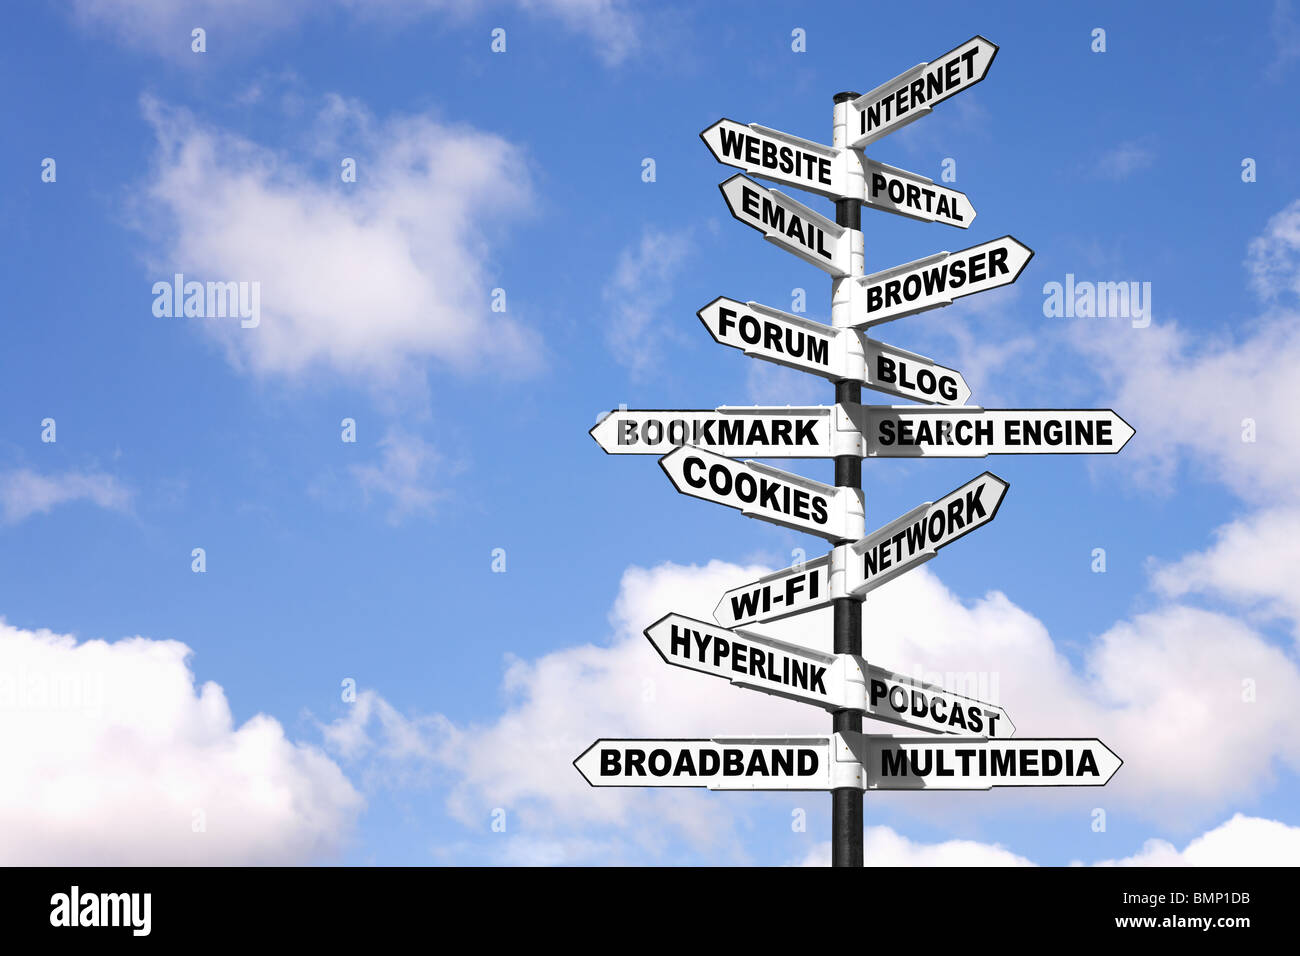 Concept signpost for internet related terminology, or in other words a signpost on the internet super highway. - Stock Image